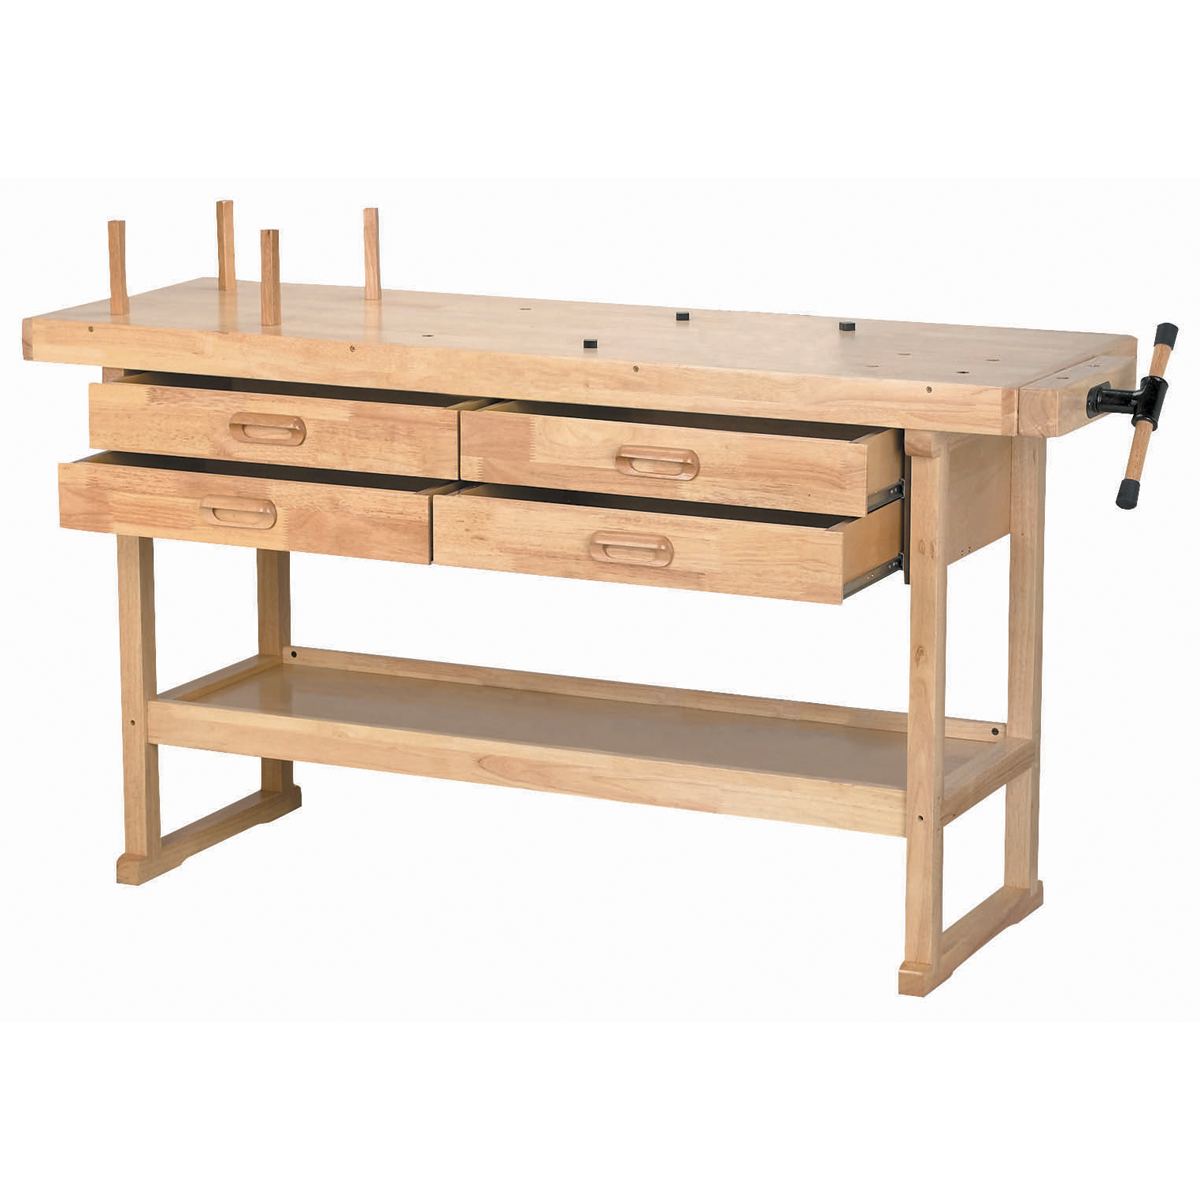 4 Drawer Hardwood Workbench